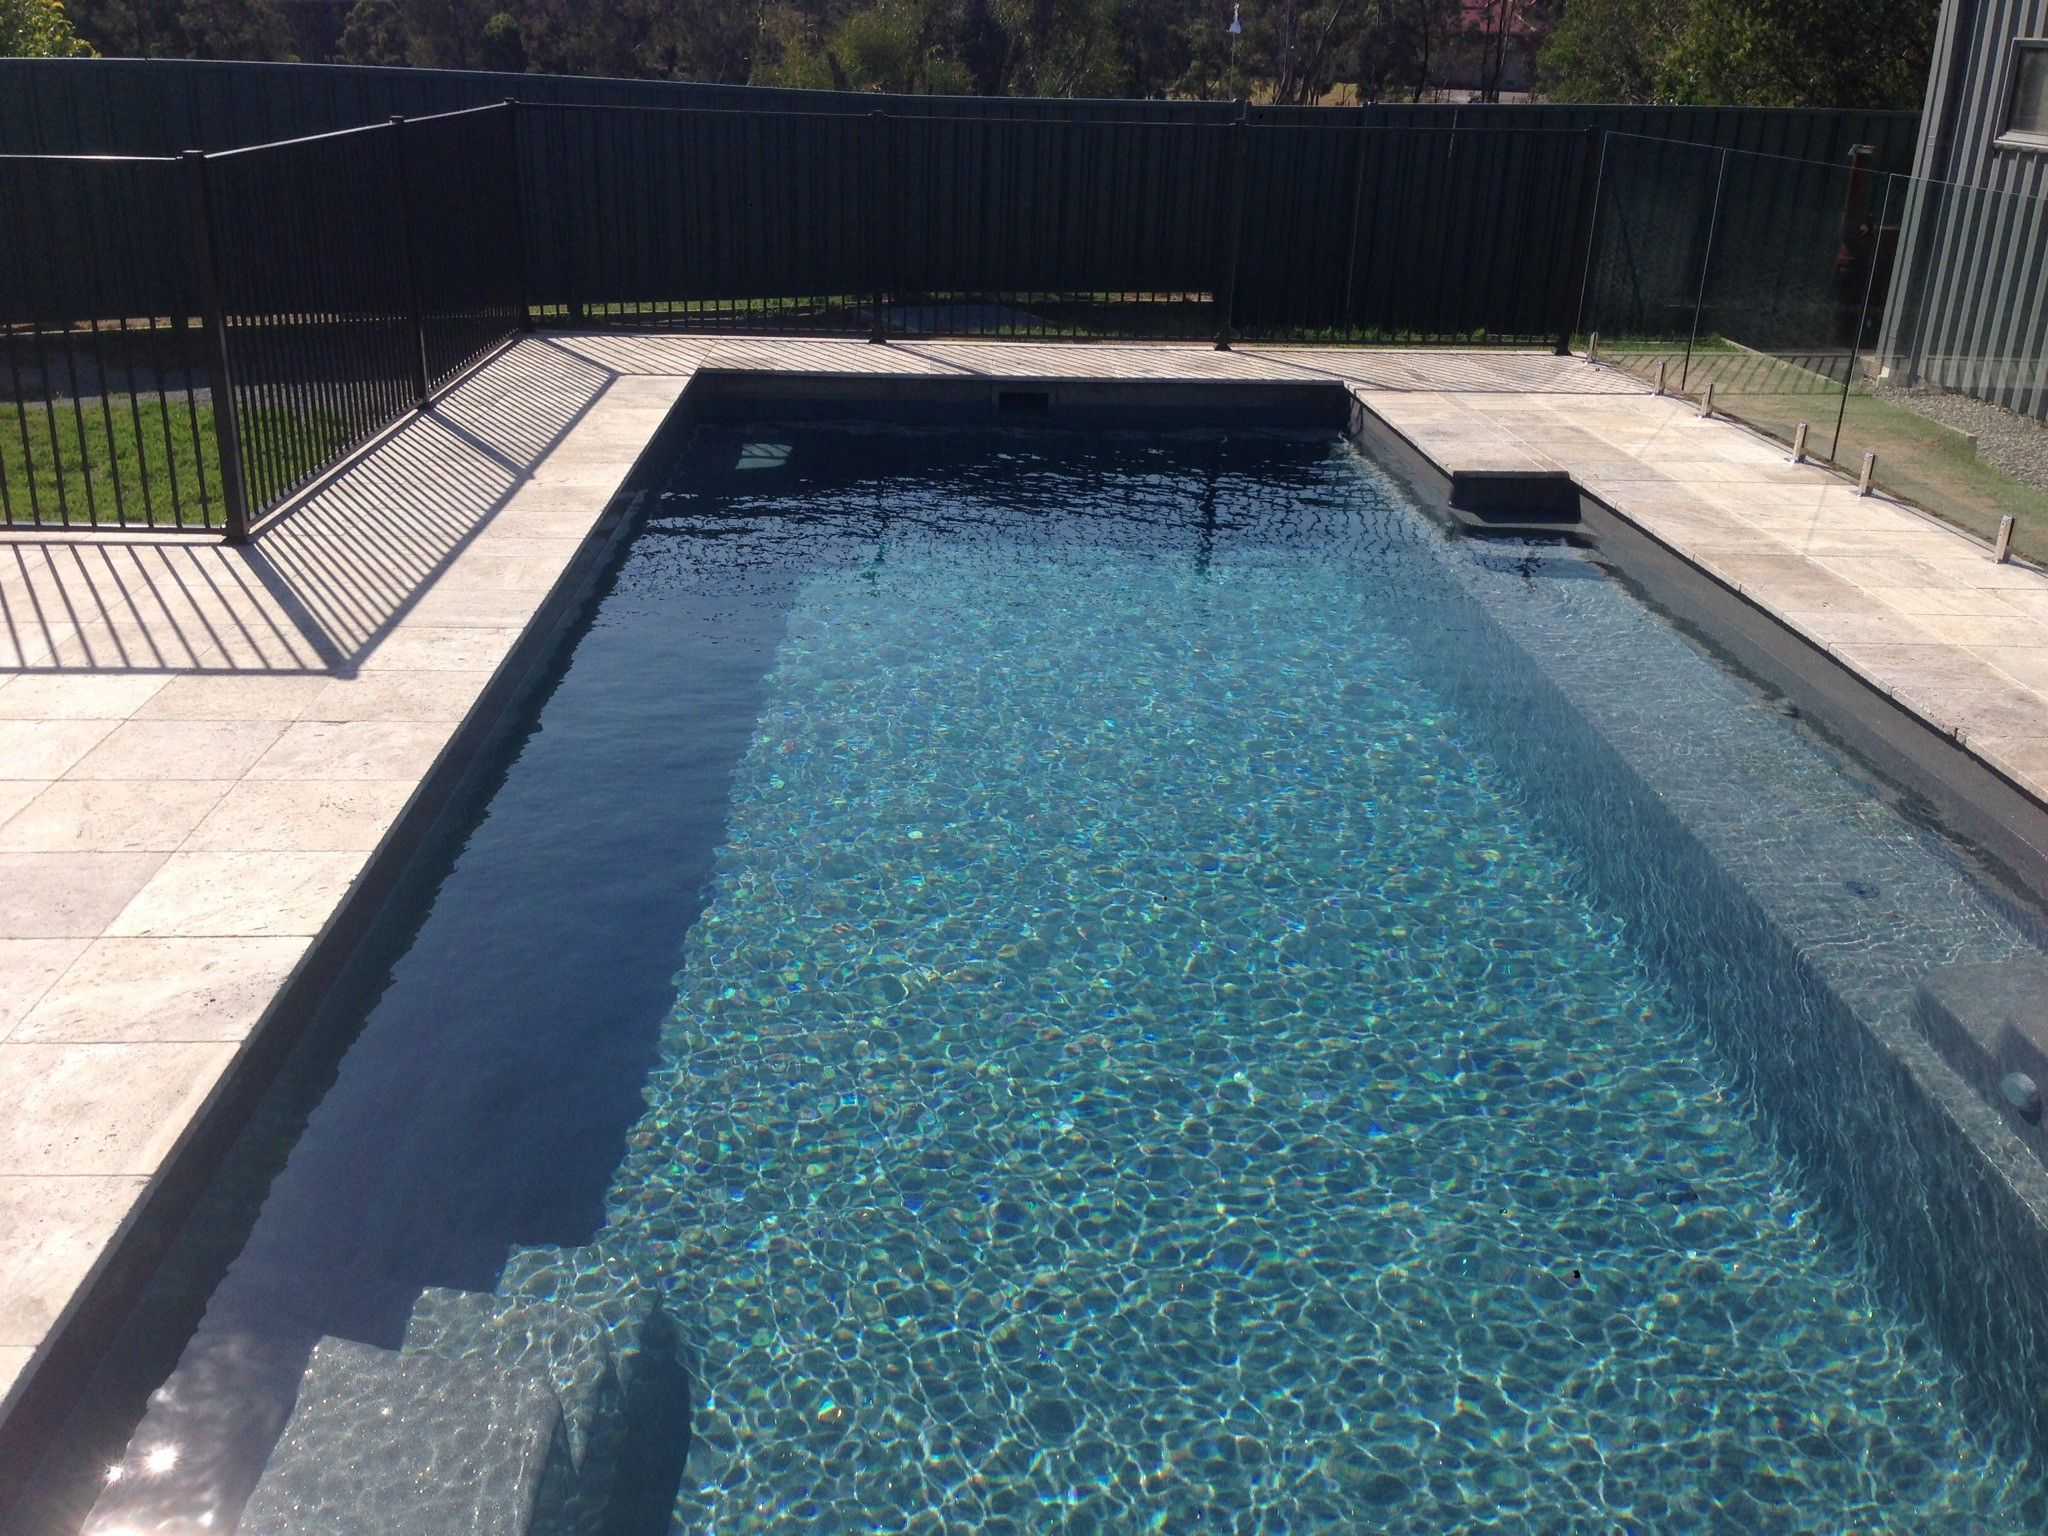 A Compass Pools 9 4 Vogue In Viridian From The Bi Luminite Range Of Colours Pool Landscape Design Travertine Pool Decking Swimming Pool Landscaping